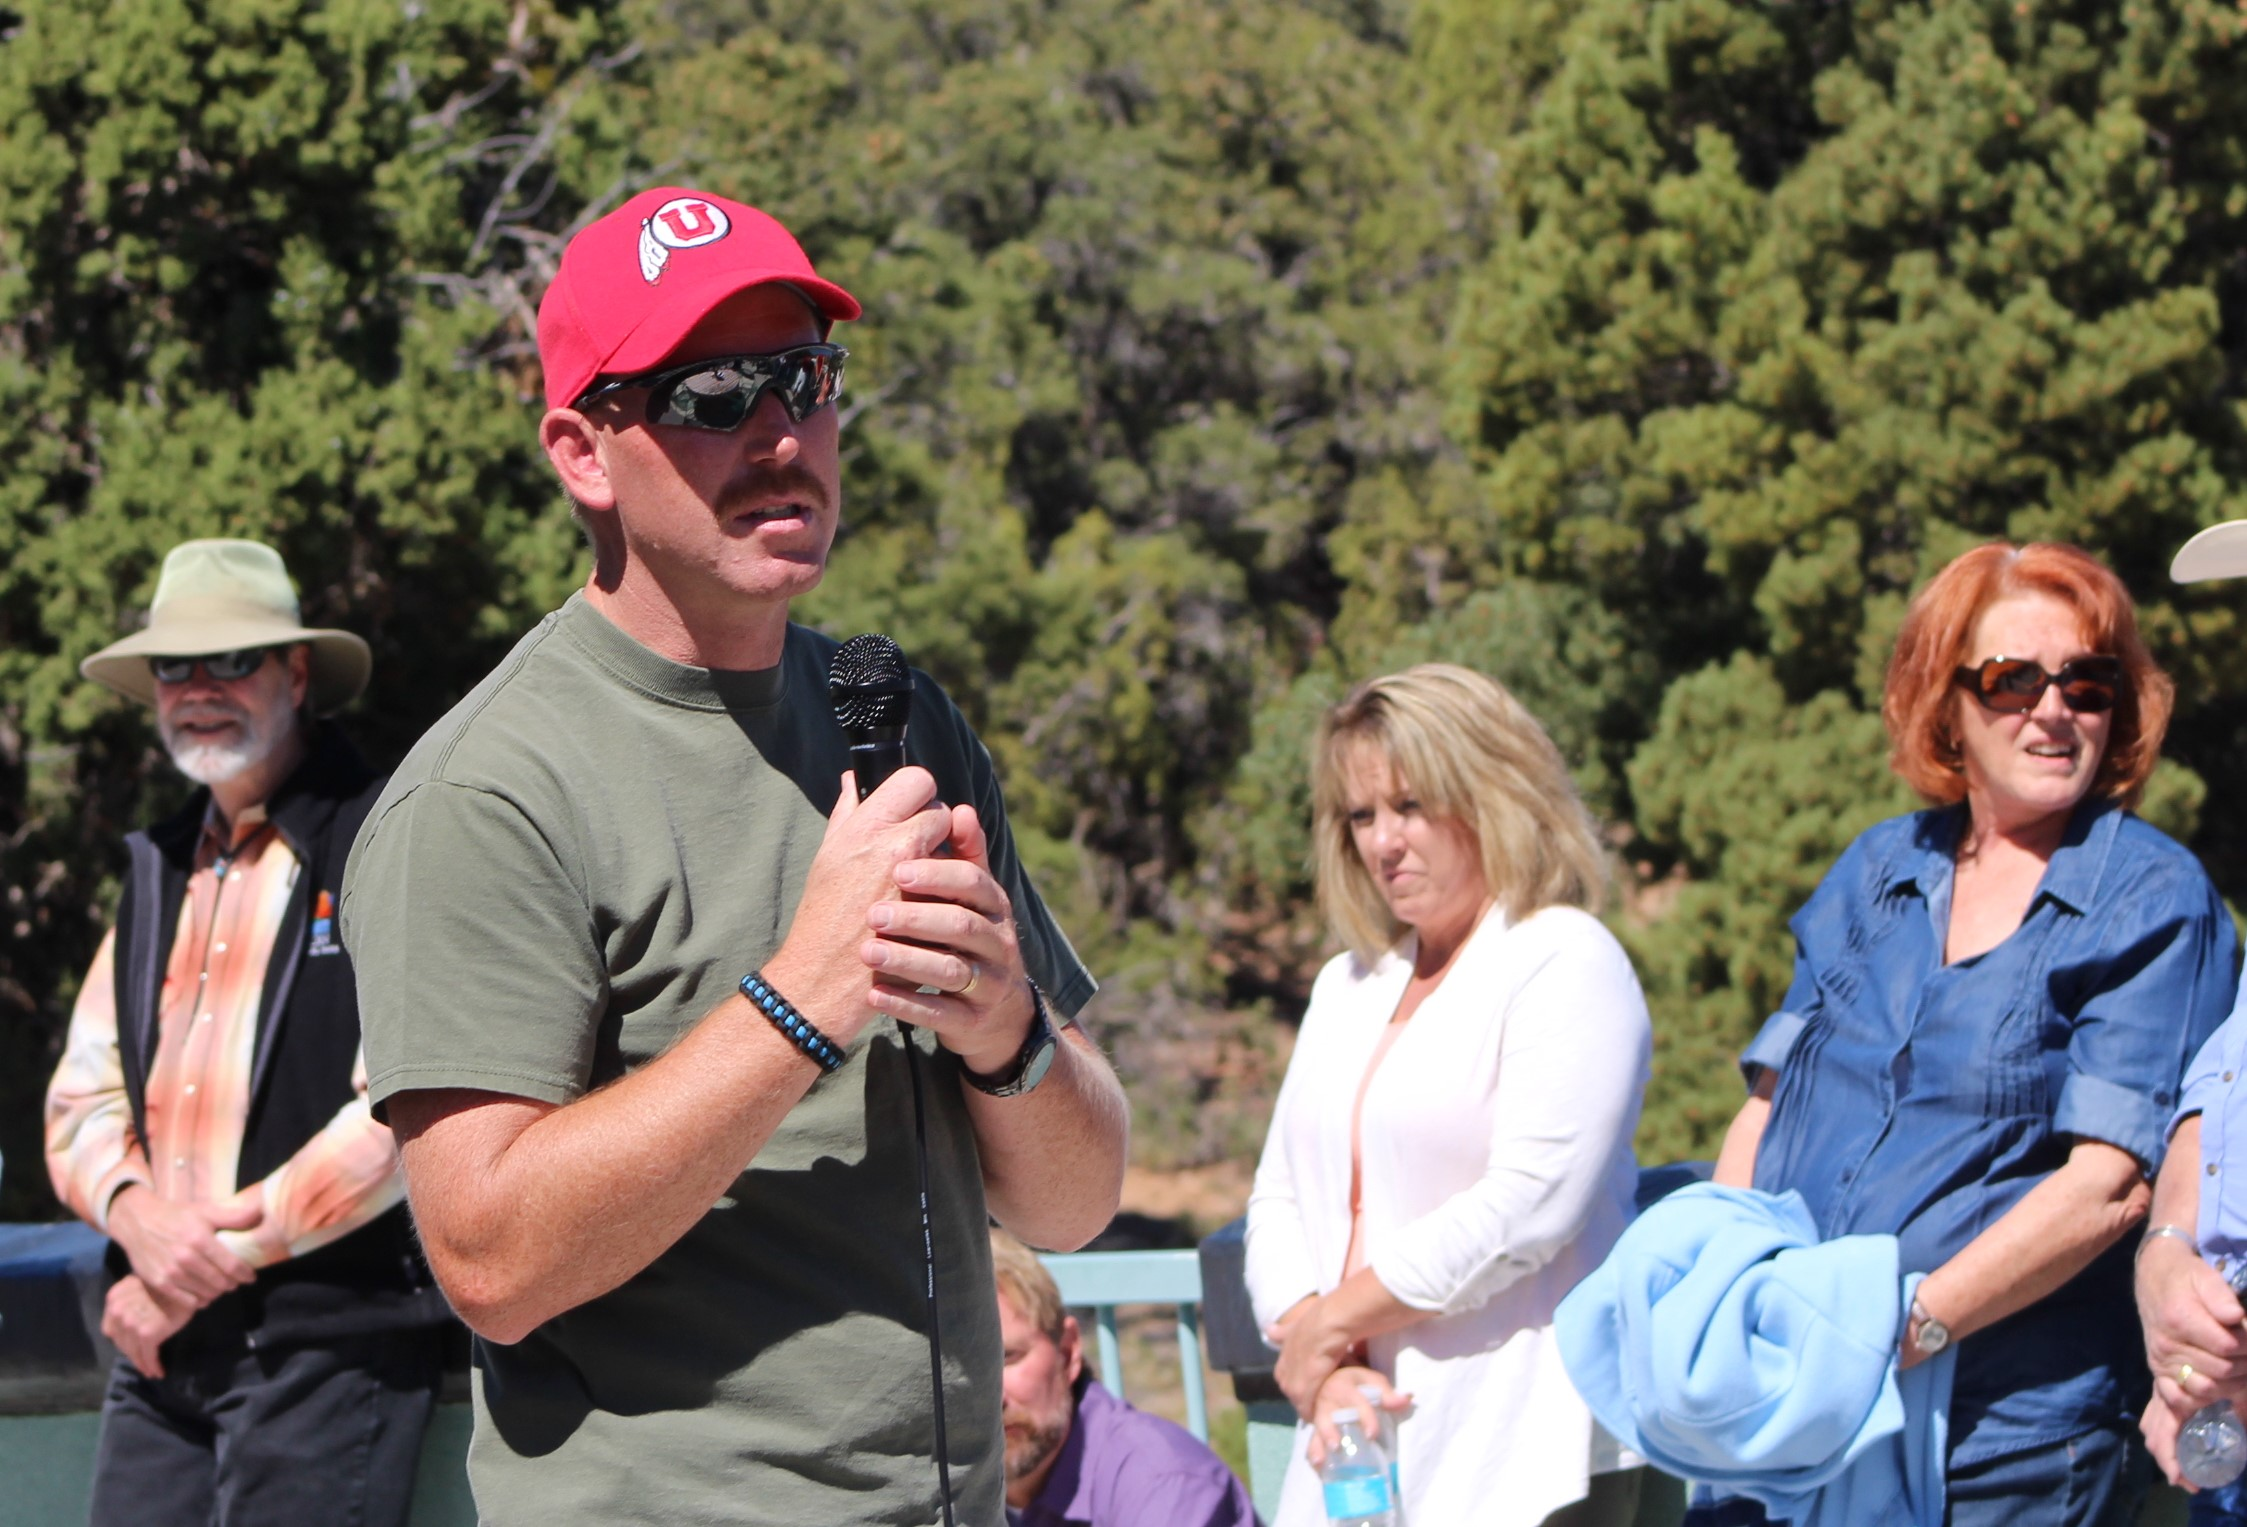 Iron County Sheriff Lt. Del Schlosser speaks to potential donors about the importance of police K-9s during a fundraising event Saturday, Iron County, Utah Sept. 18, 2016   Photo by Tracie Sullivan, St. George / Cedar City News